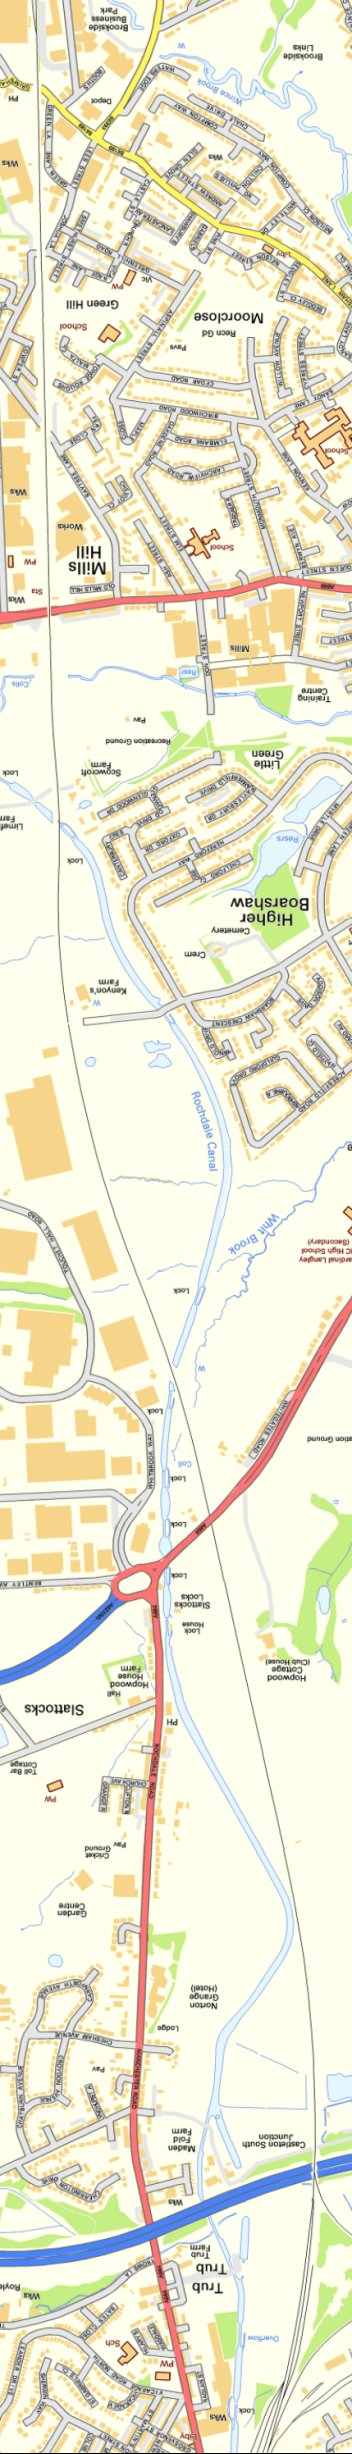 Section from Ordnance Survey OpenSource mapping 2013 showing L&YR railway line from Baytree Lane bridge to Castleton South JUnction (M62 bridge)